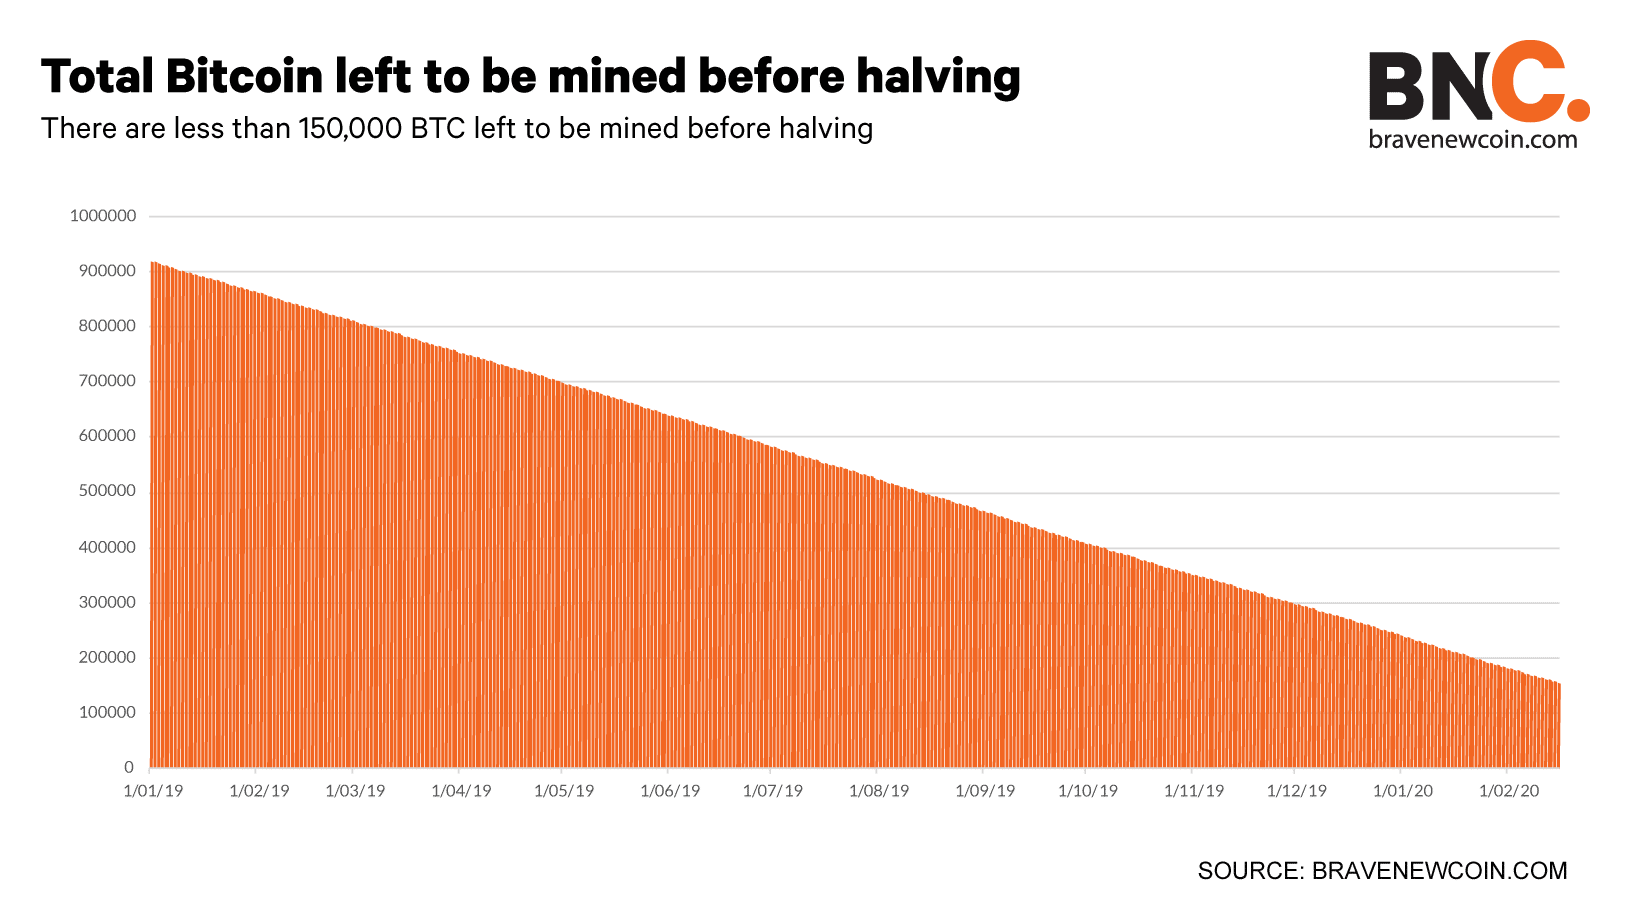 Total-Bitcoin-left-to-be-mined-before-halving